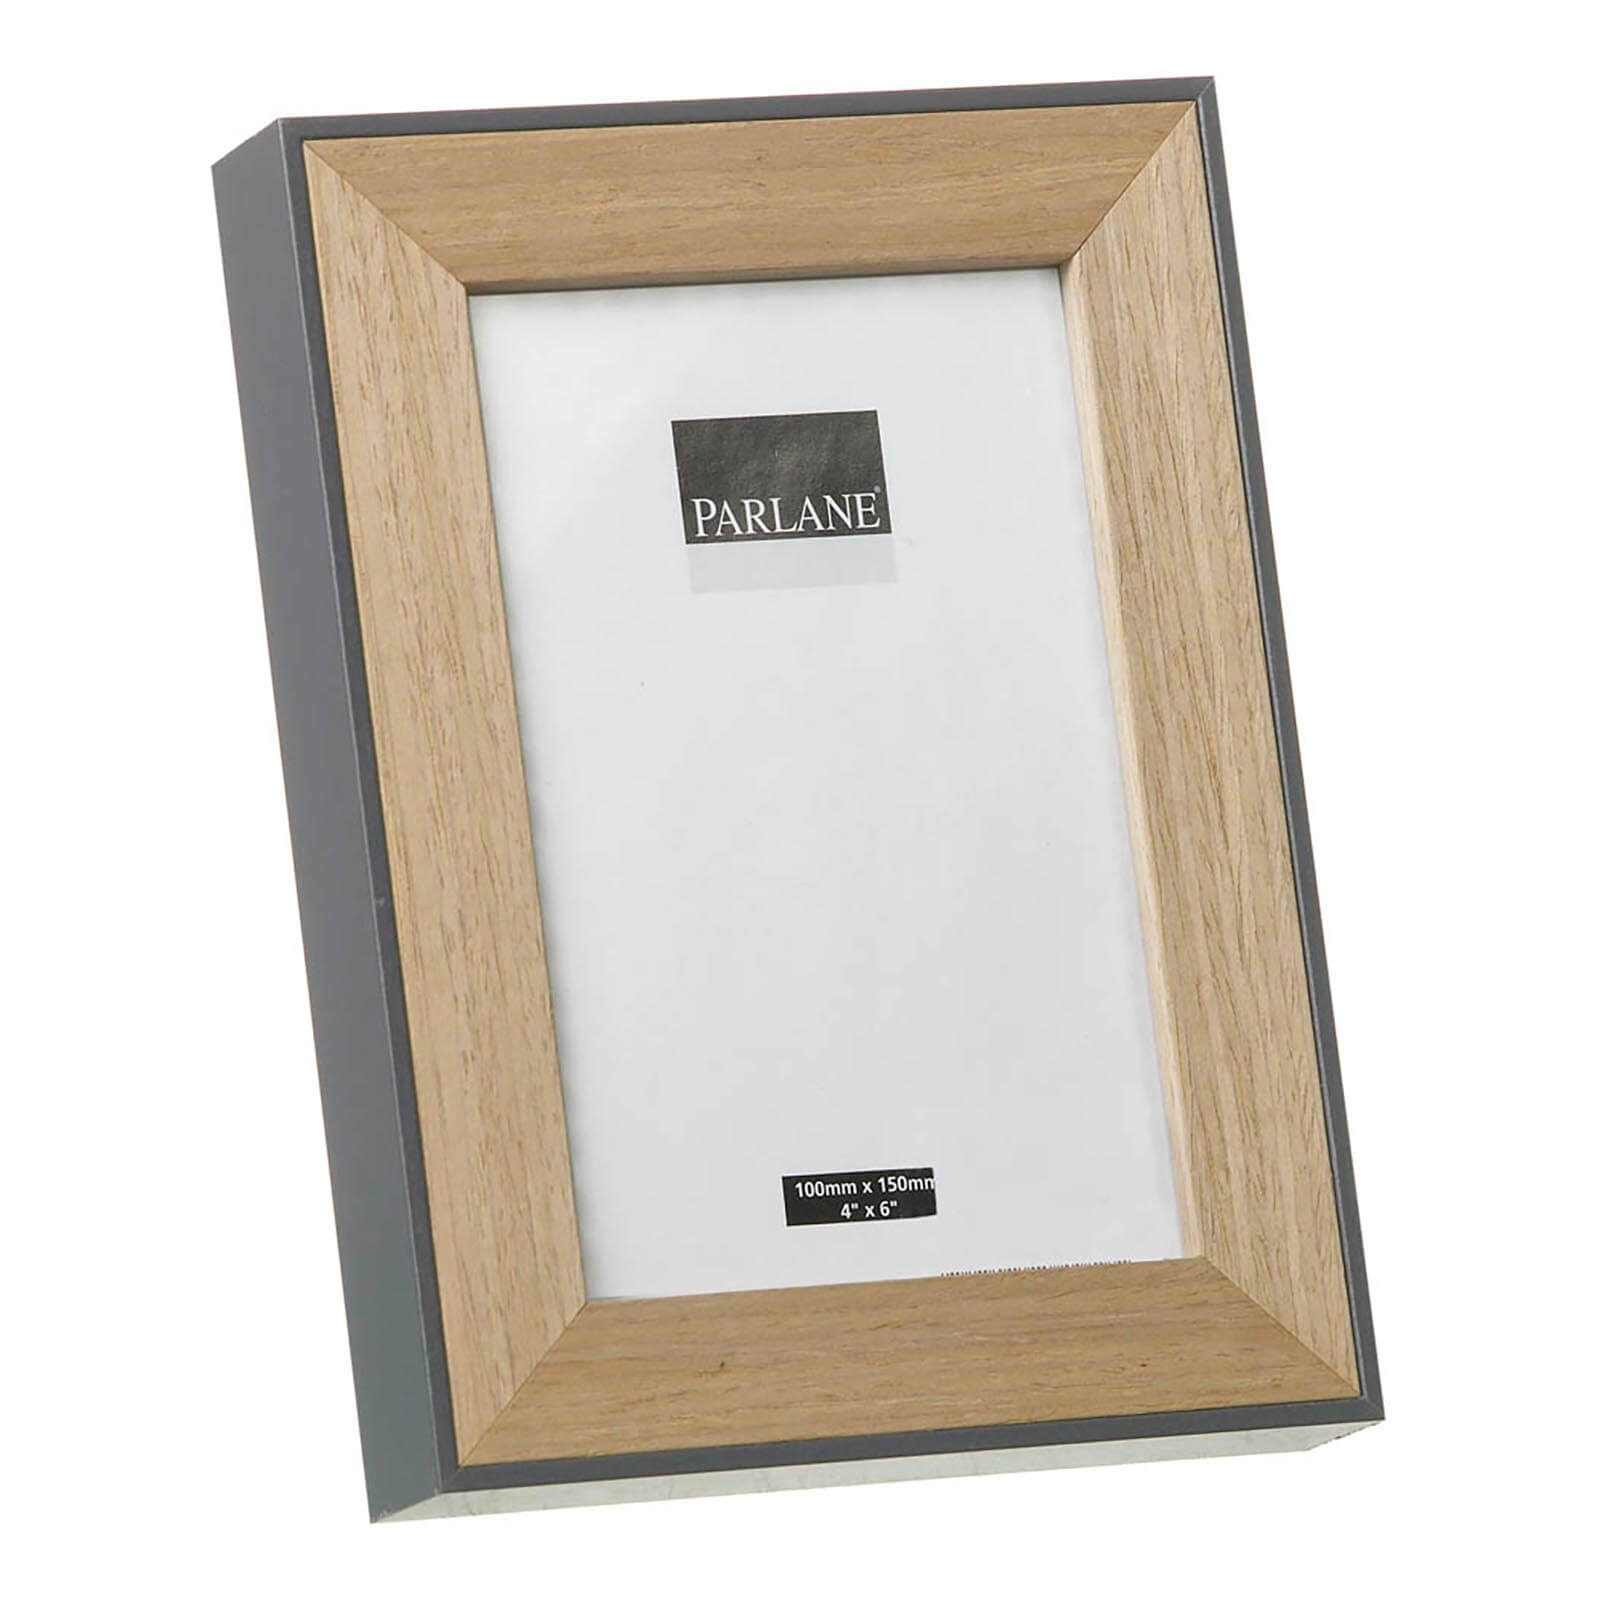 Parlane Oundle Wooden Frame - Natural/Grey (19.5 x 14.5cm)